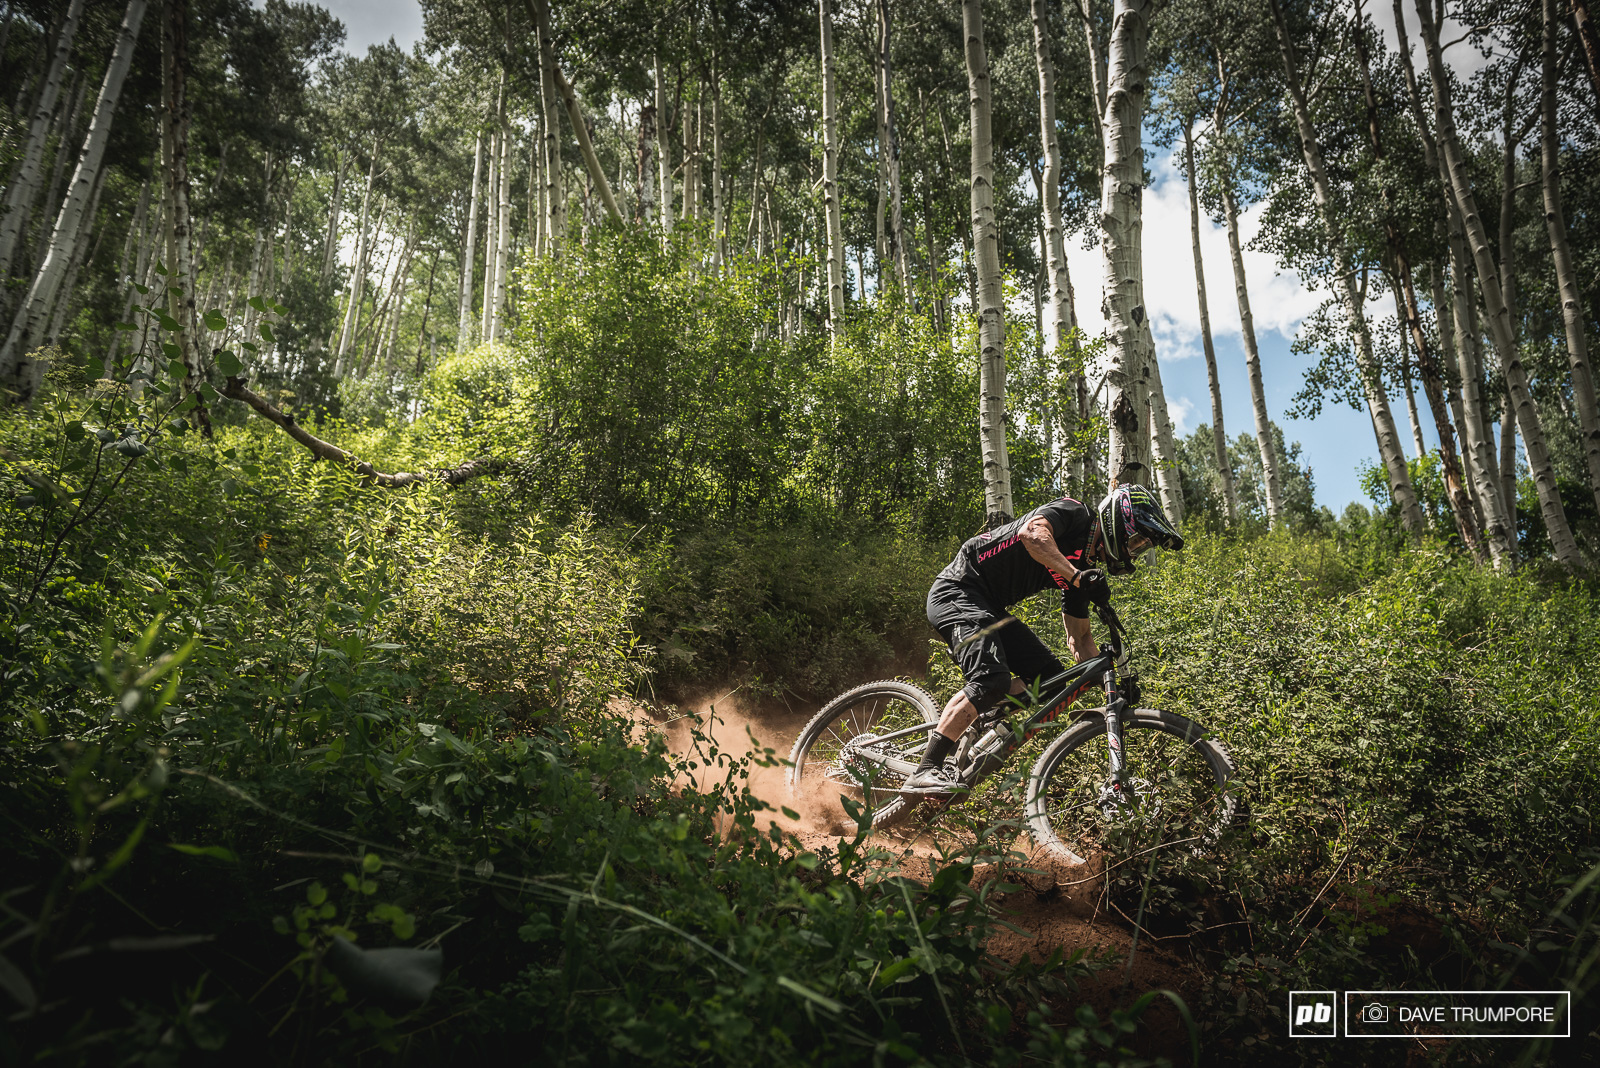 Jared admits tight switchbacks are his nemesis but he made quick work of the through The Dumps on stage 3 to solidify his lead going into day 2.